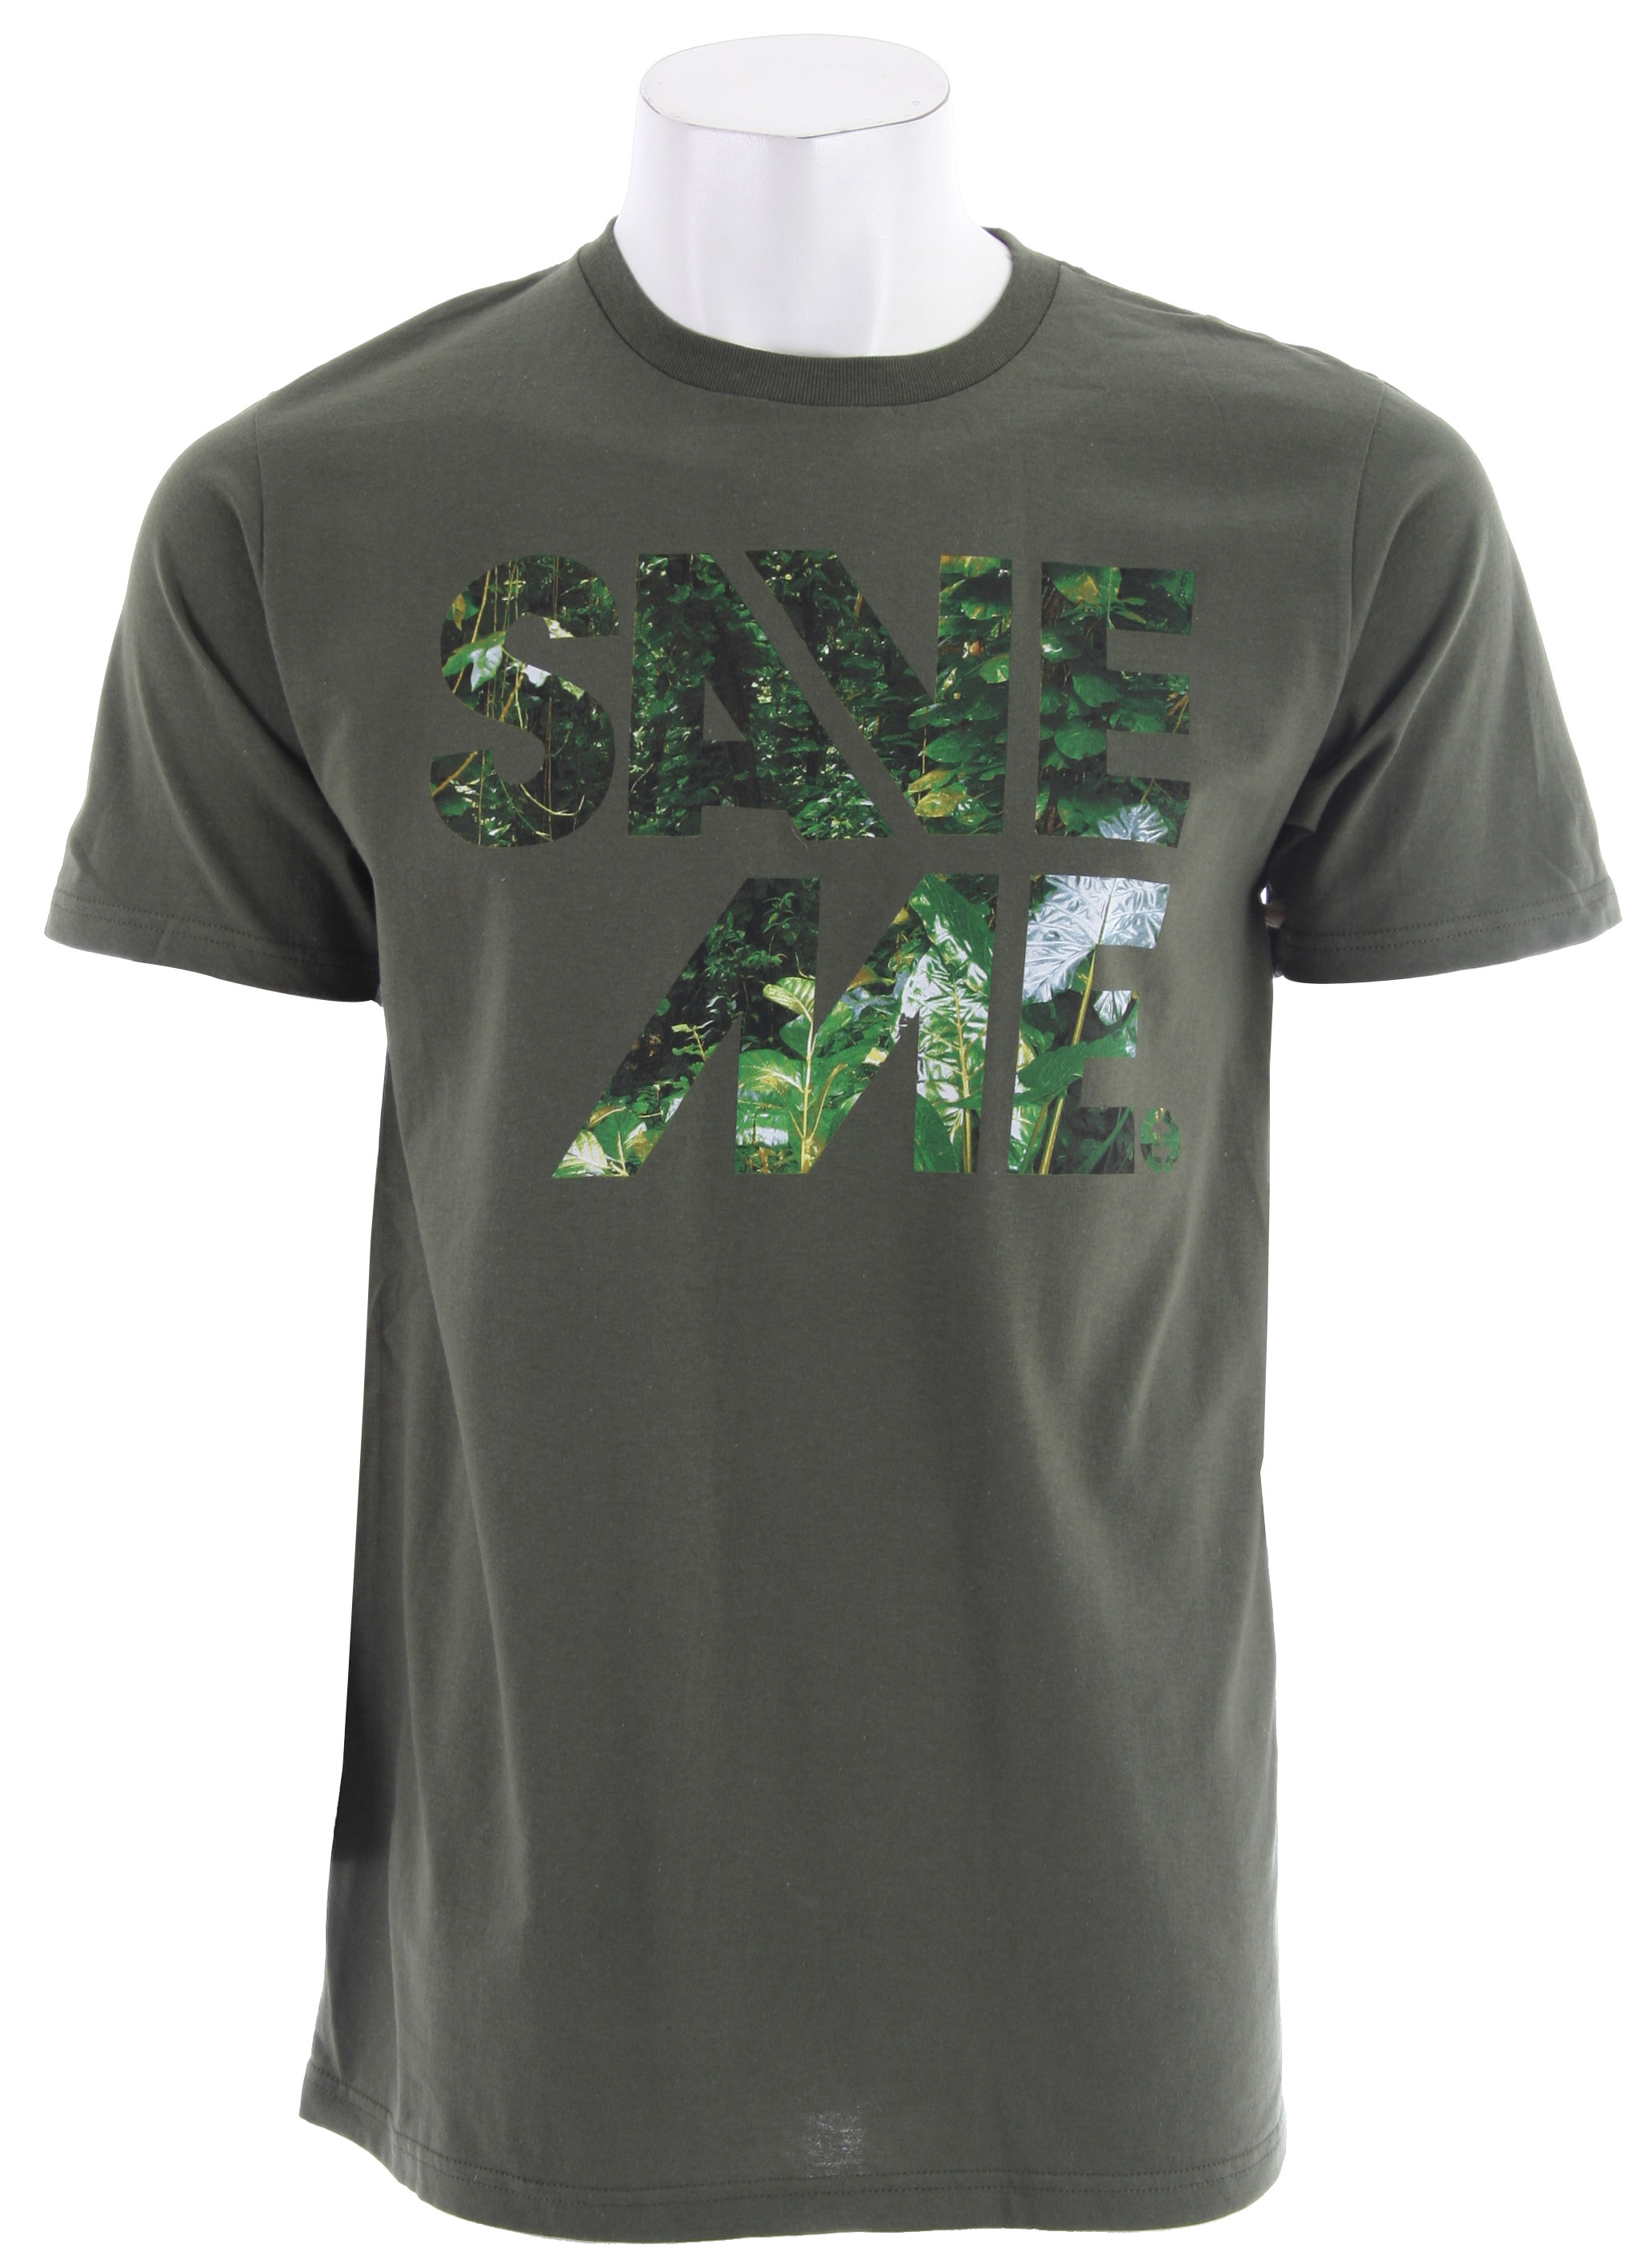 5 oz 100% organic cottonKey Features of The Planet Earth Callahan S/S T-Shirt: Regular Fit Crew Neck Short Sleeve - $7.95